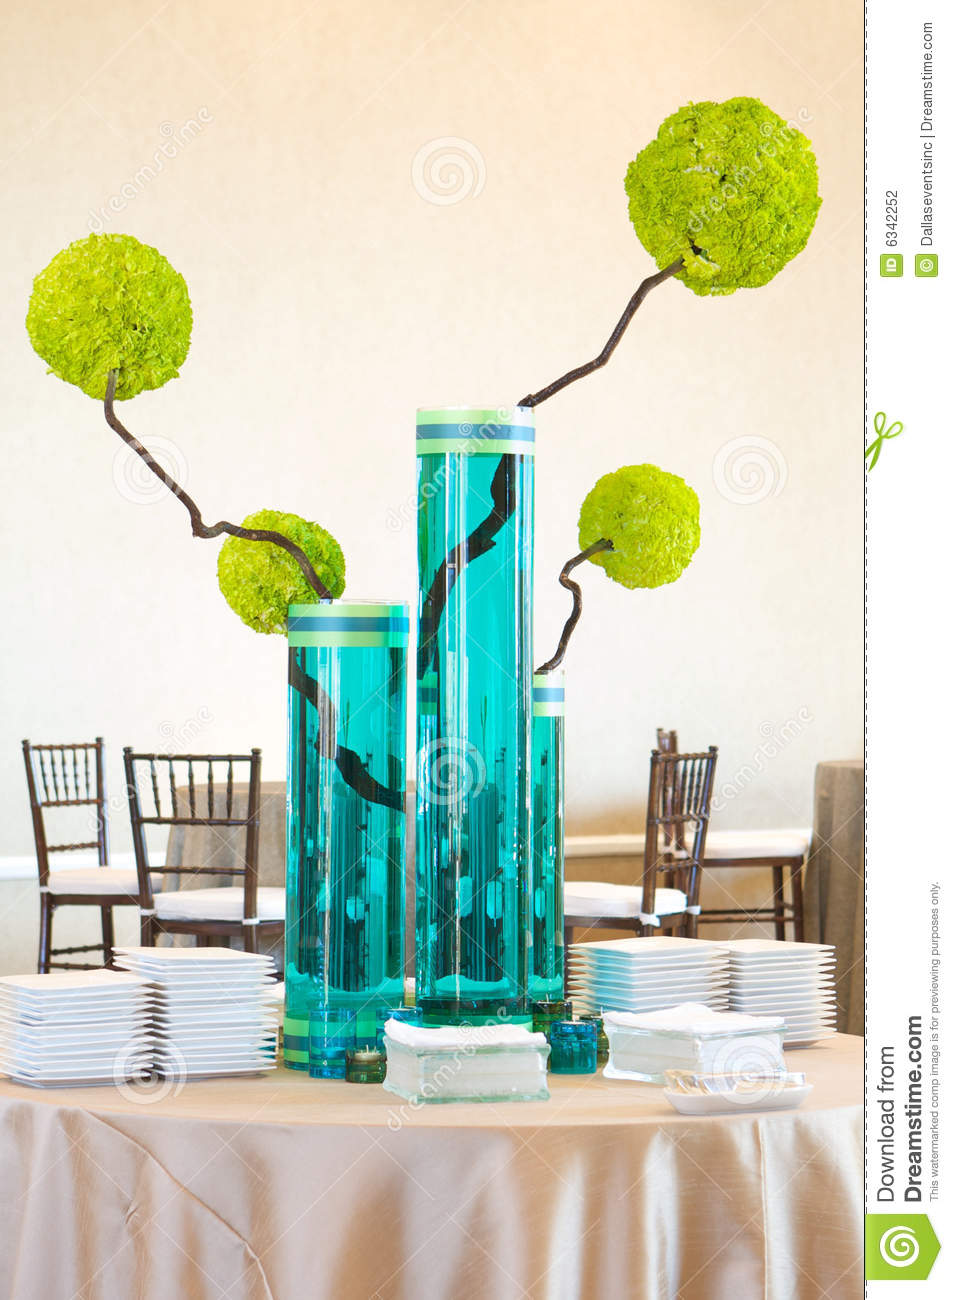 Upscale modern table centerpiece stock photography image for Modern centerpieces for tables